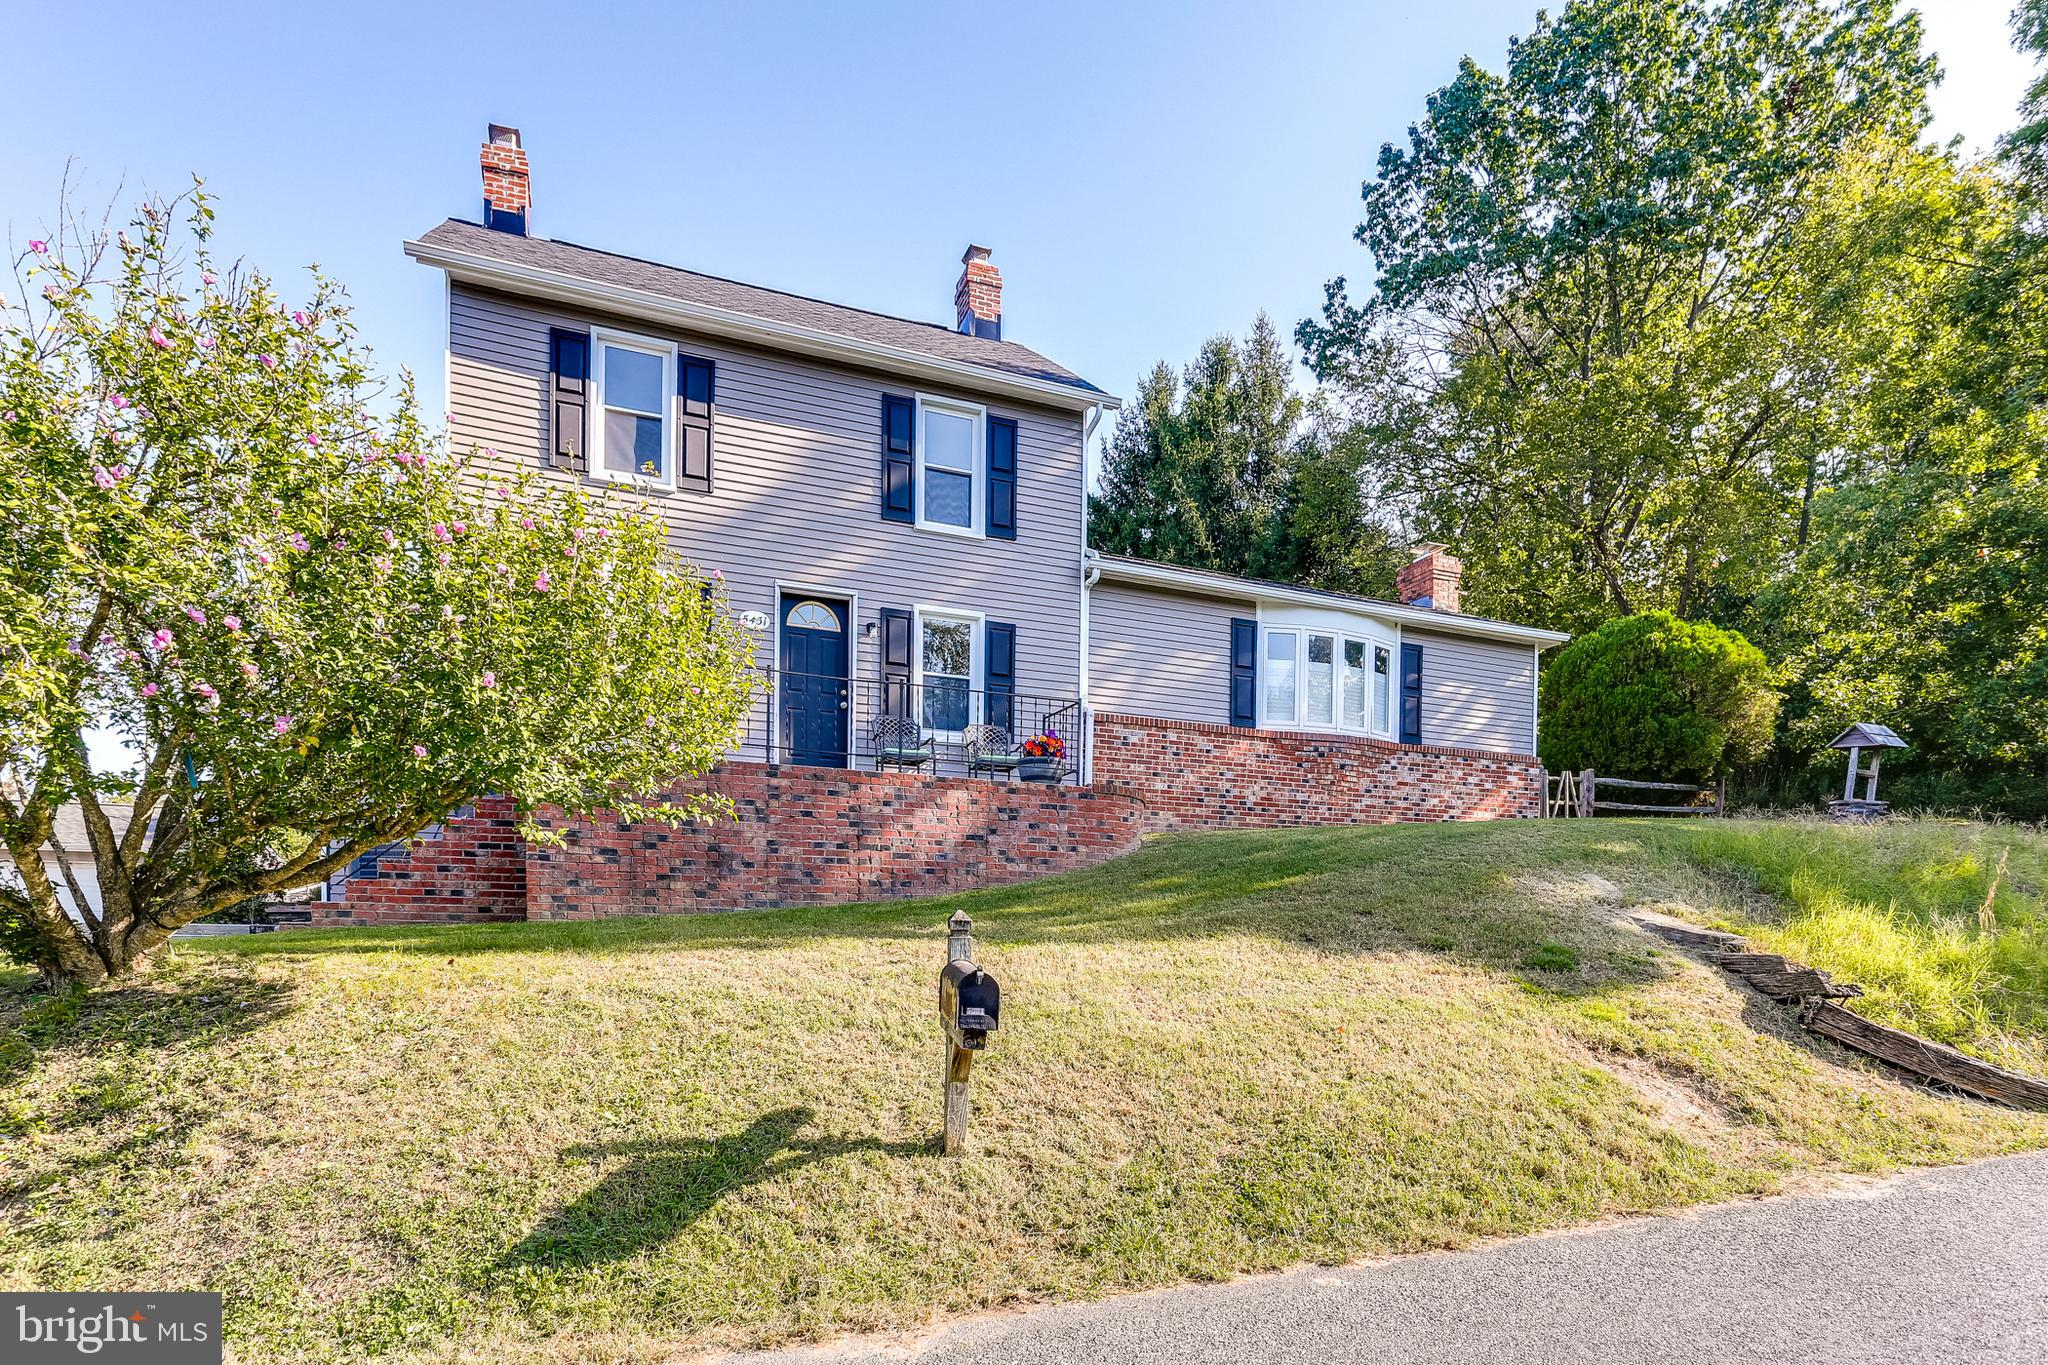 Welcome to 5431 Hines Farmhouse! This charming and cozy 3 acres, 3BR/1.5BA home is tucked away on a